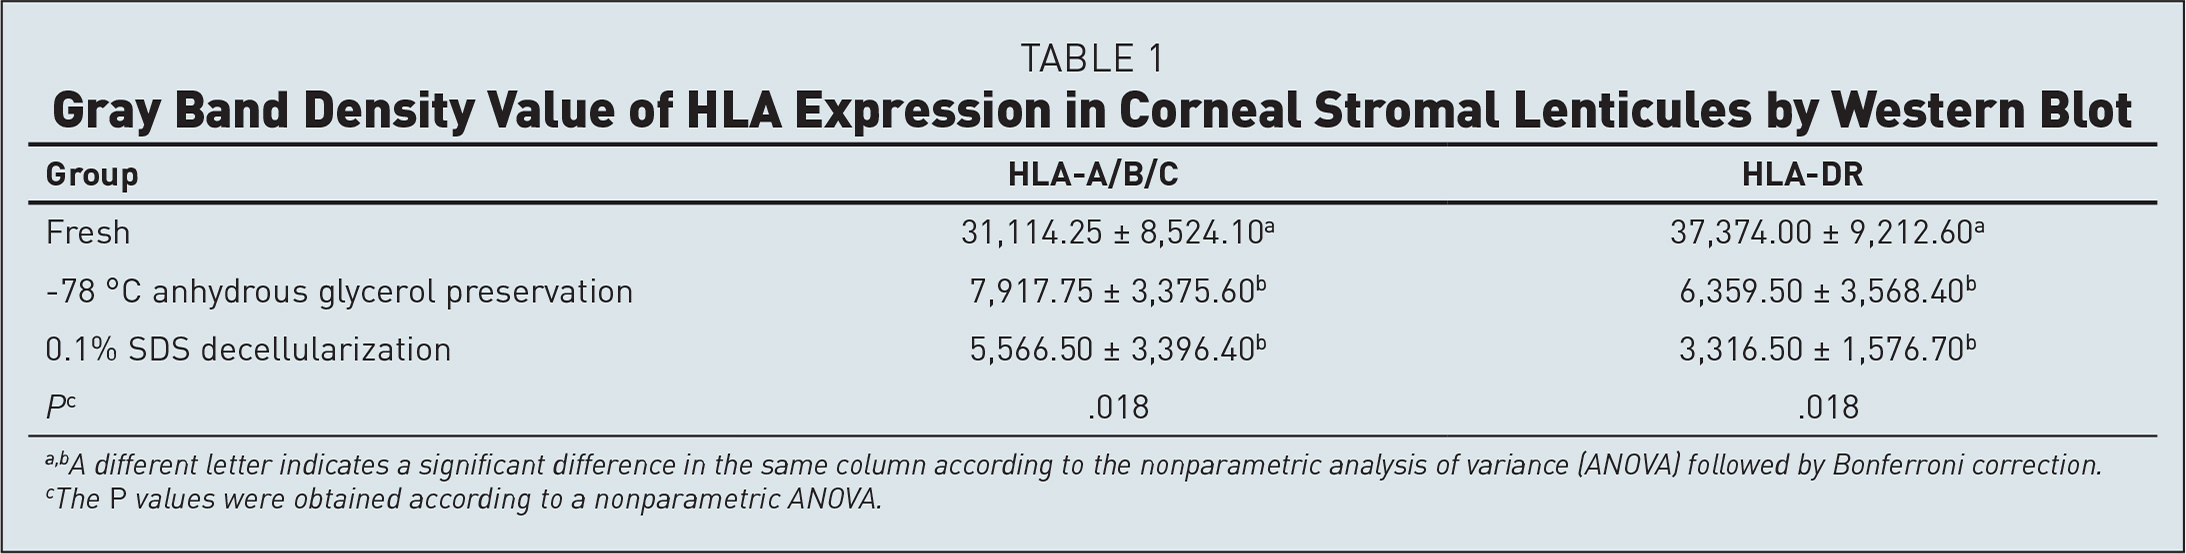 Gray Band Density Value of HLA Expression in Corneal Stromal Lenticules by Western Blot